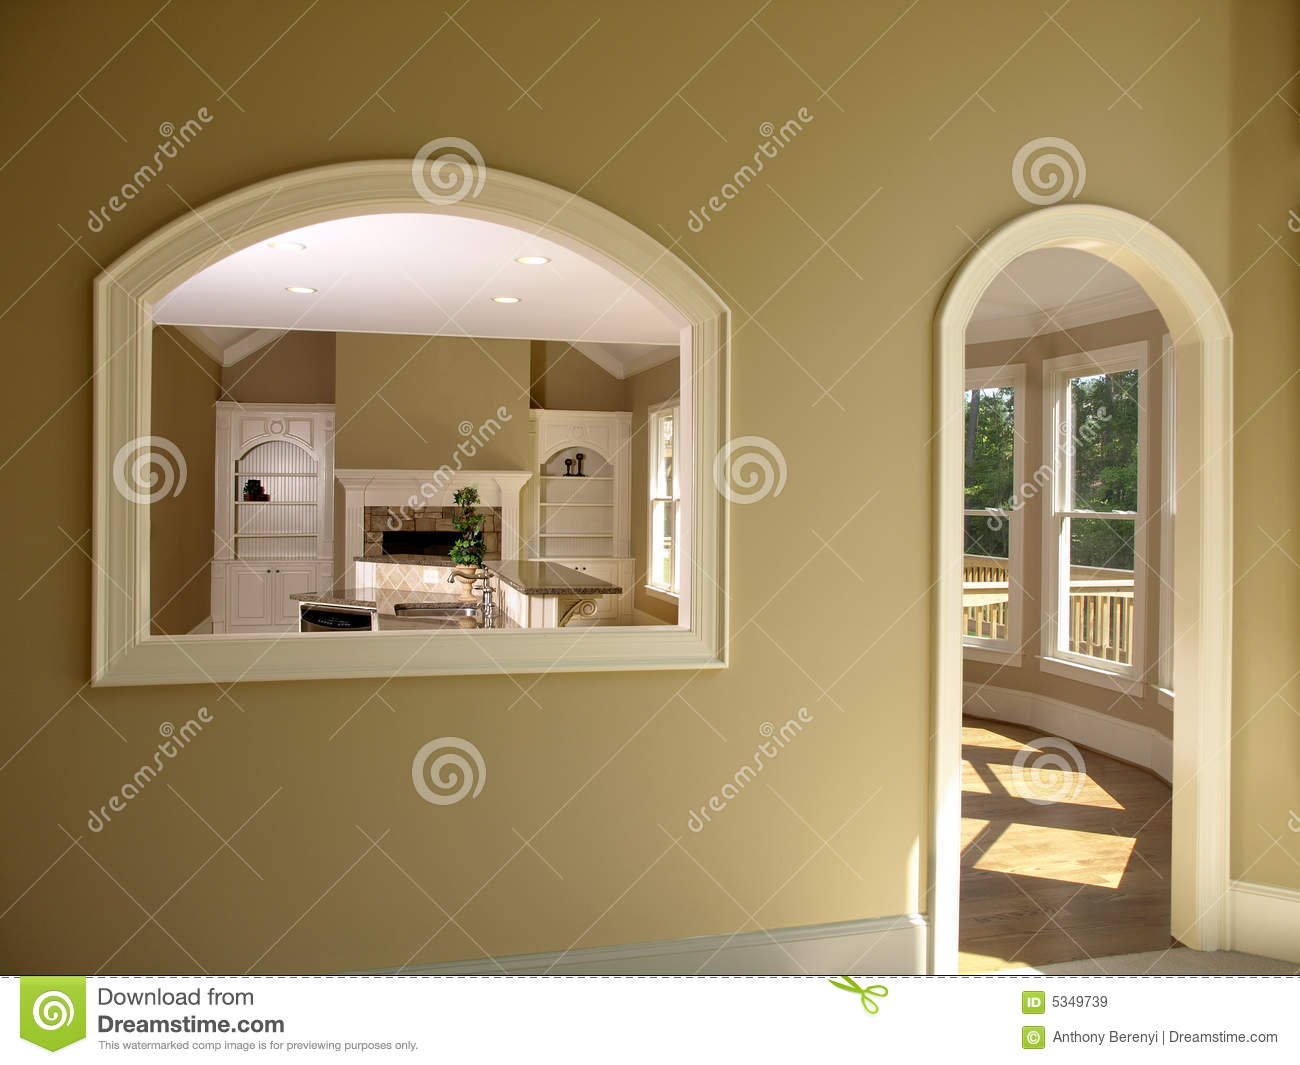 Luxury model home den opening 2 royalty free stock images for Luxury home models